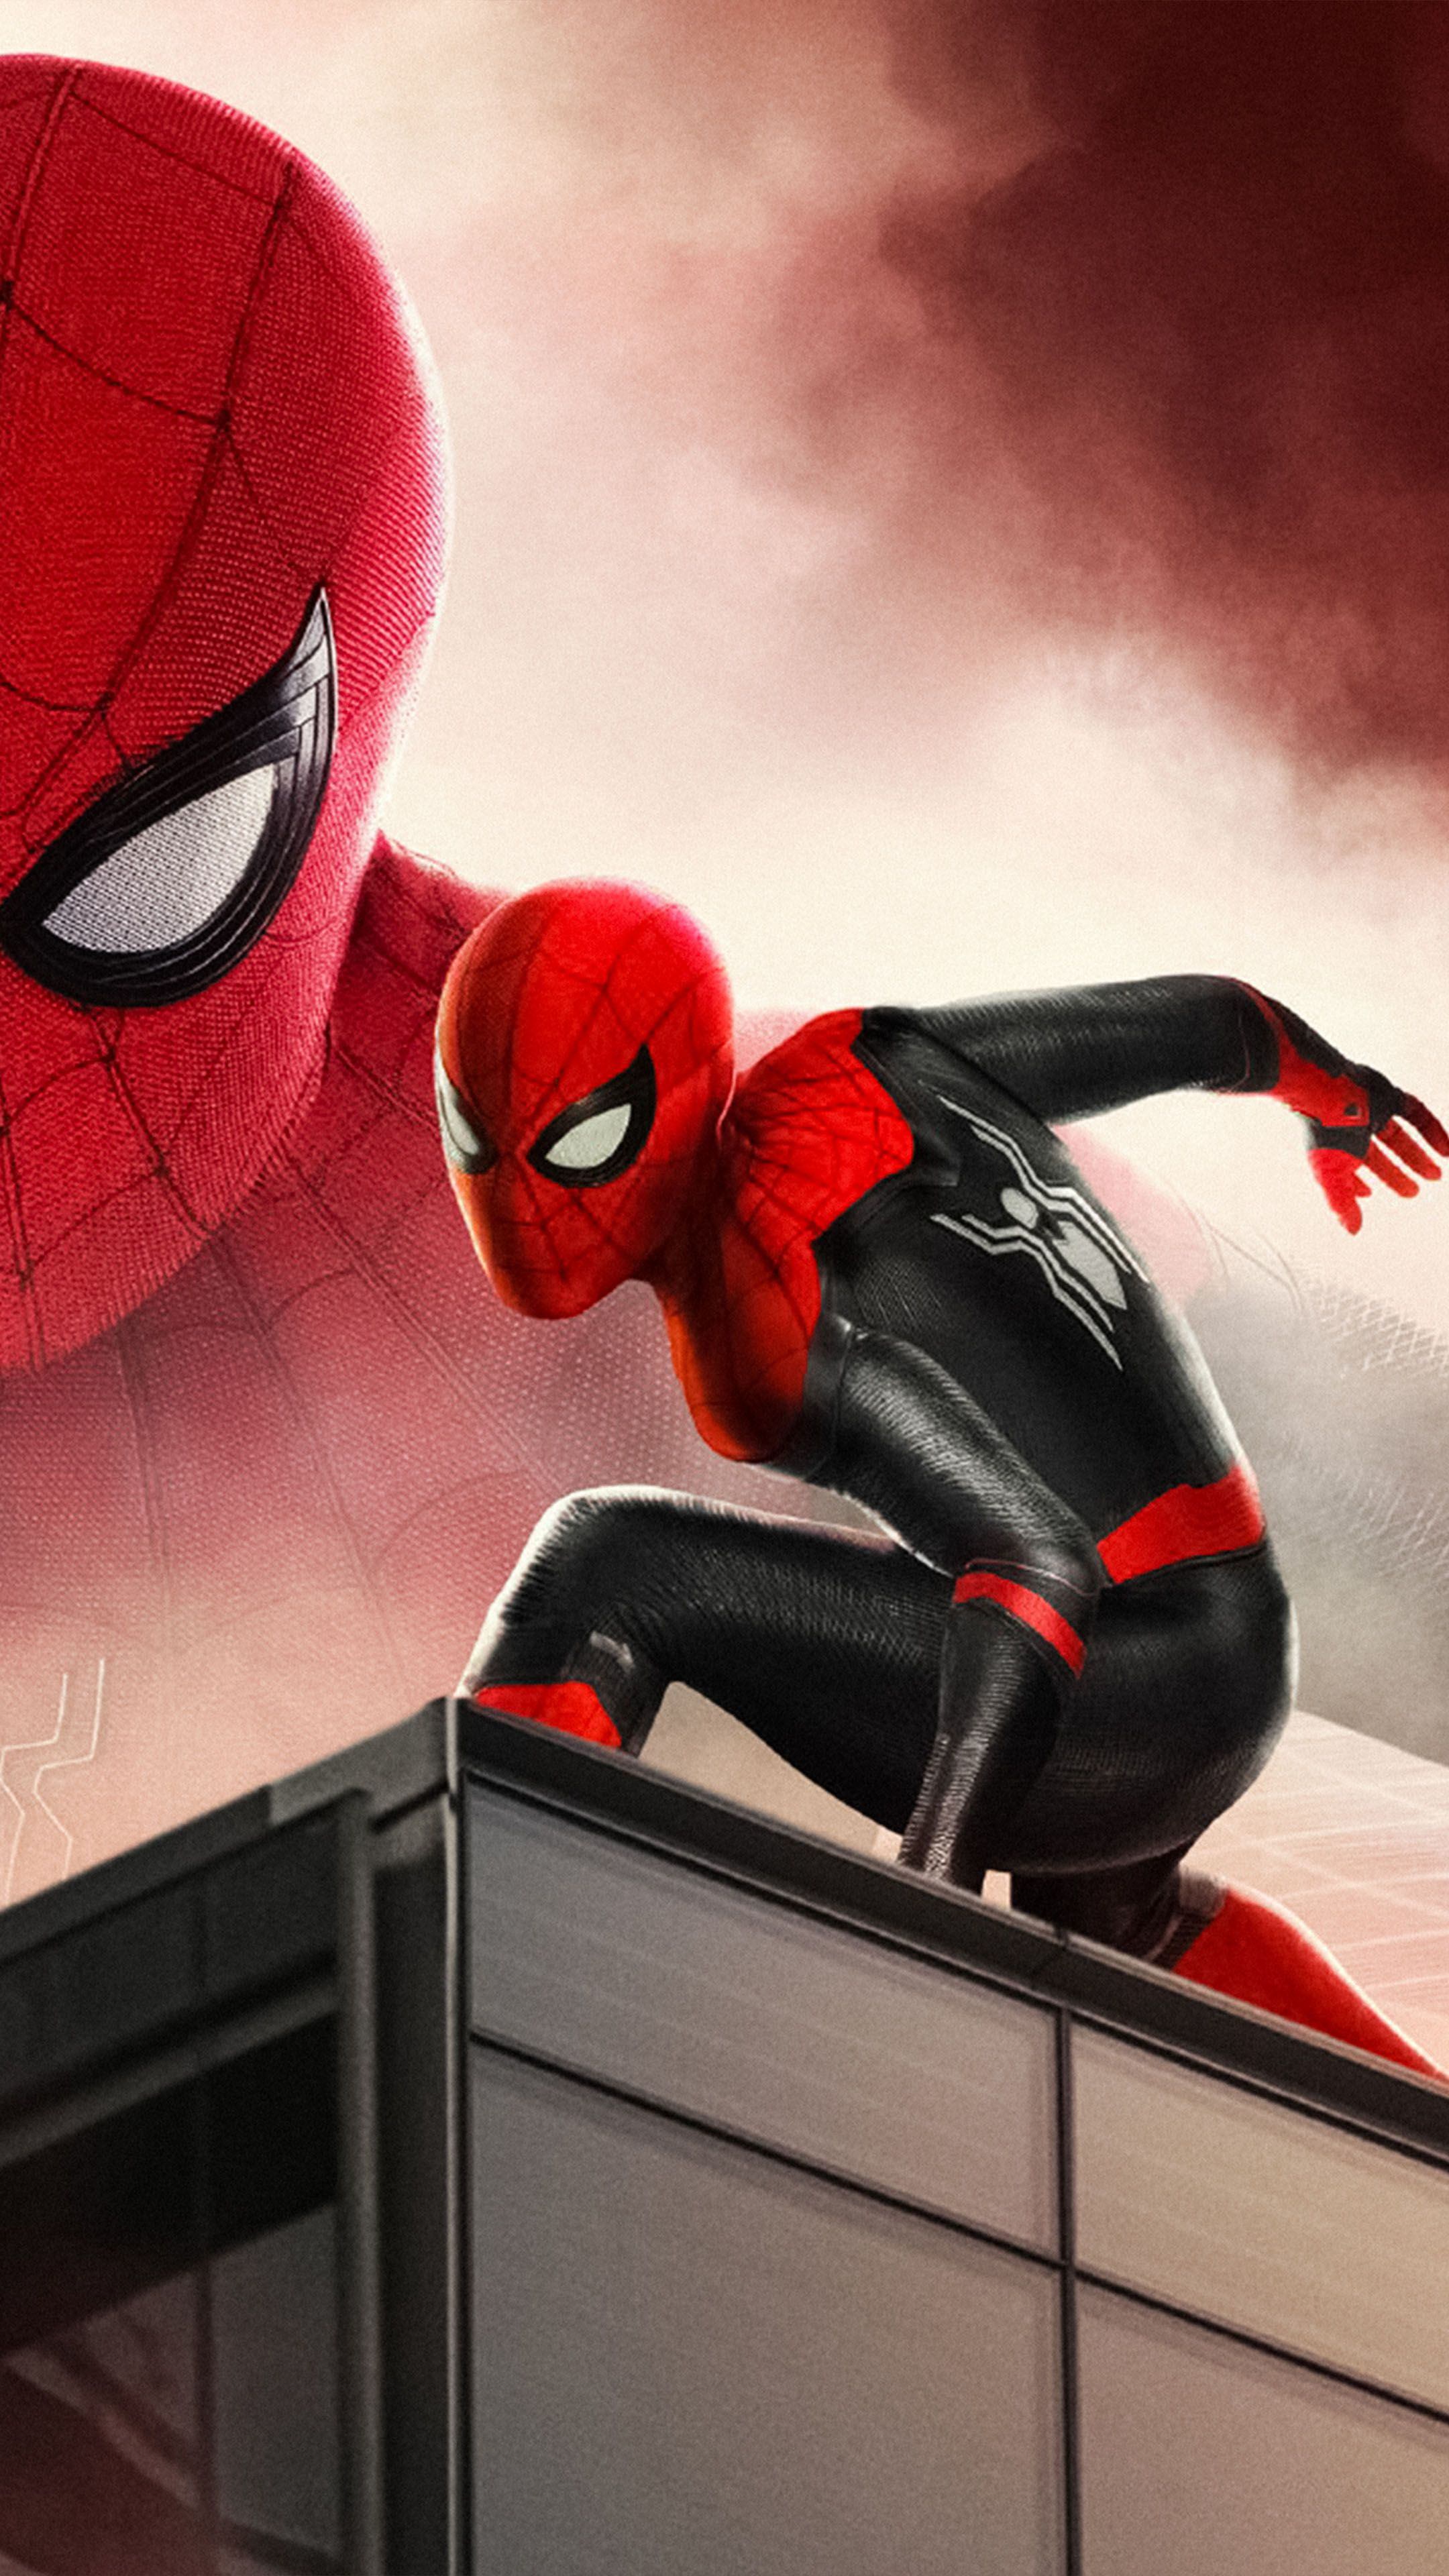 Download Spider Man Far From Home 2019 Poster Free Pure 4k Ultra Hd Mobile Wallpaper Spiderman Spiderman Pictures Spiderman Poster